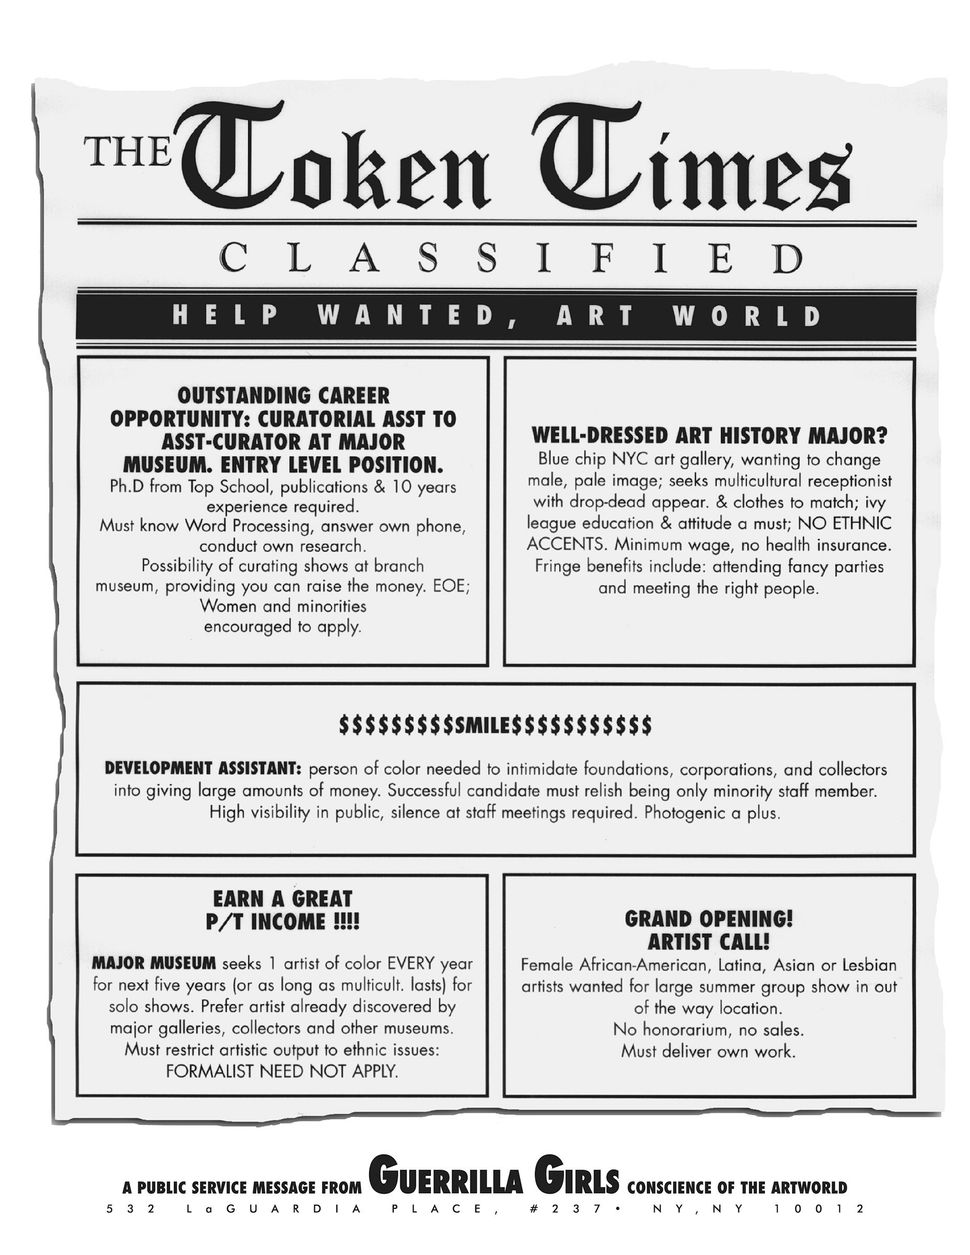 Guerrilla Girls, Token Times, 1995, 22 x   17 in. Pomona College Collection.   Museum purchase with funds provided   by the E